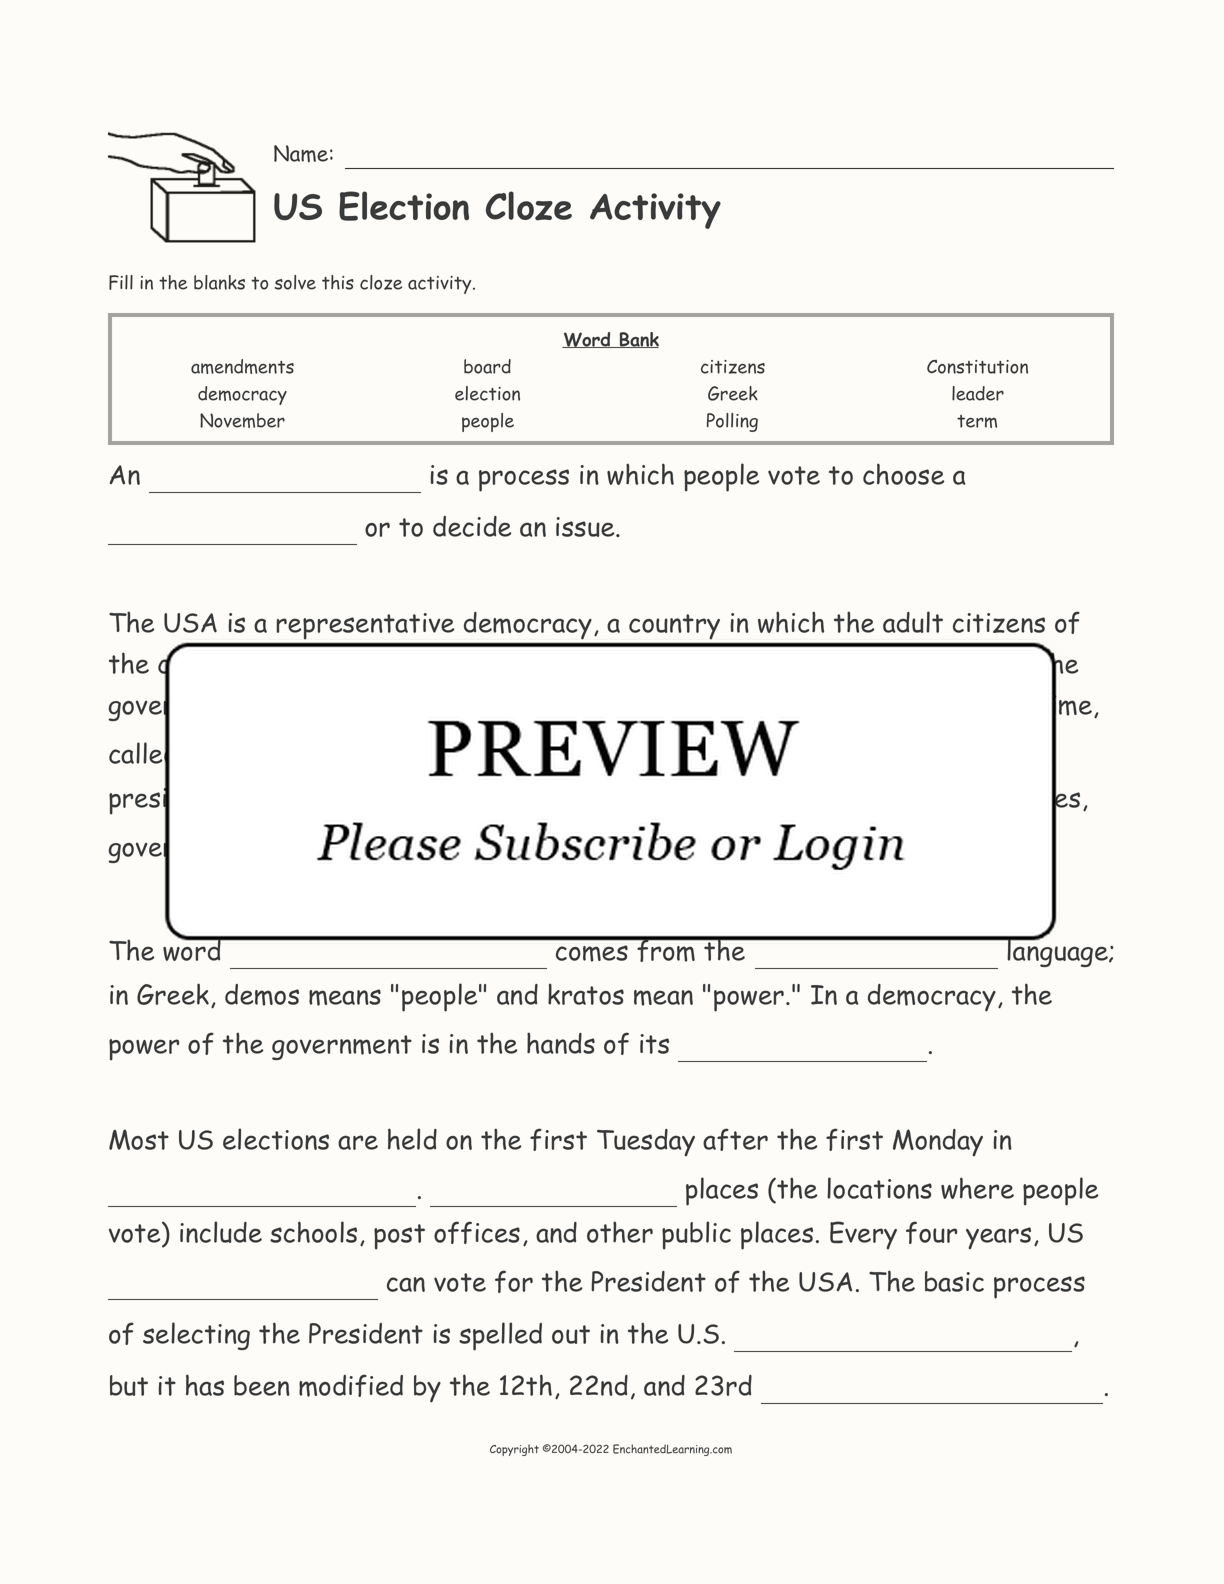 US Election Cloze Activity interactive worksheet page 1